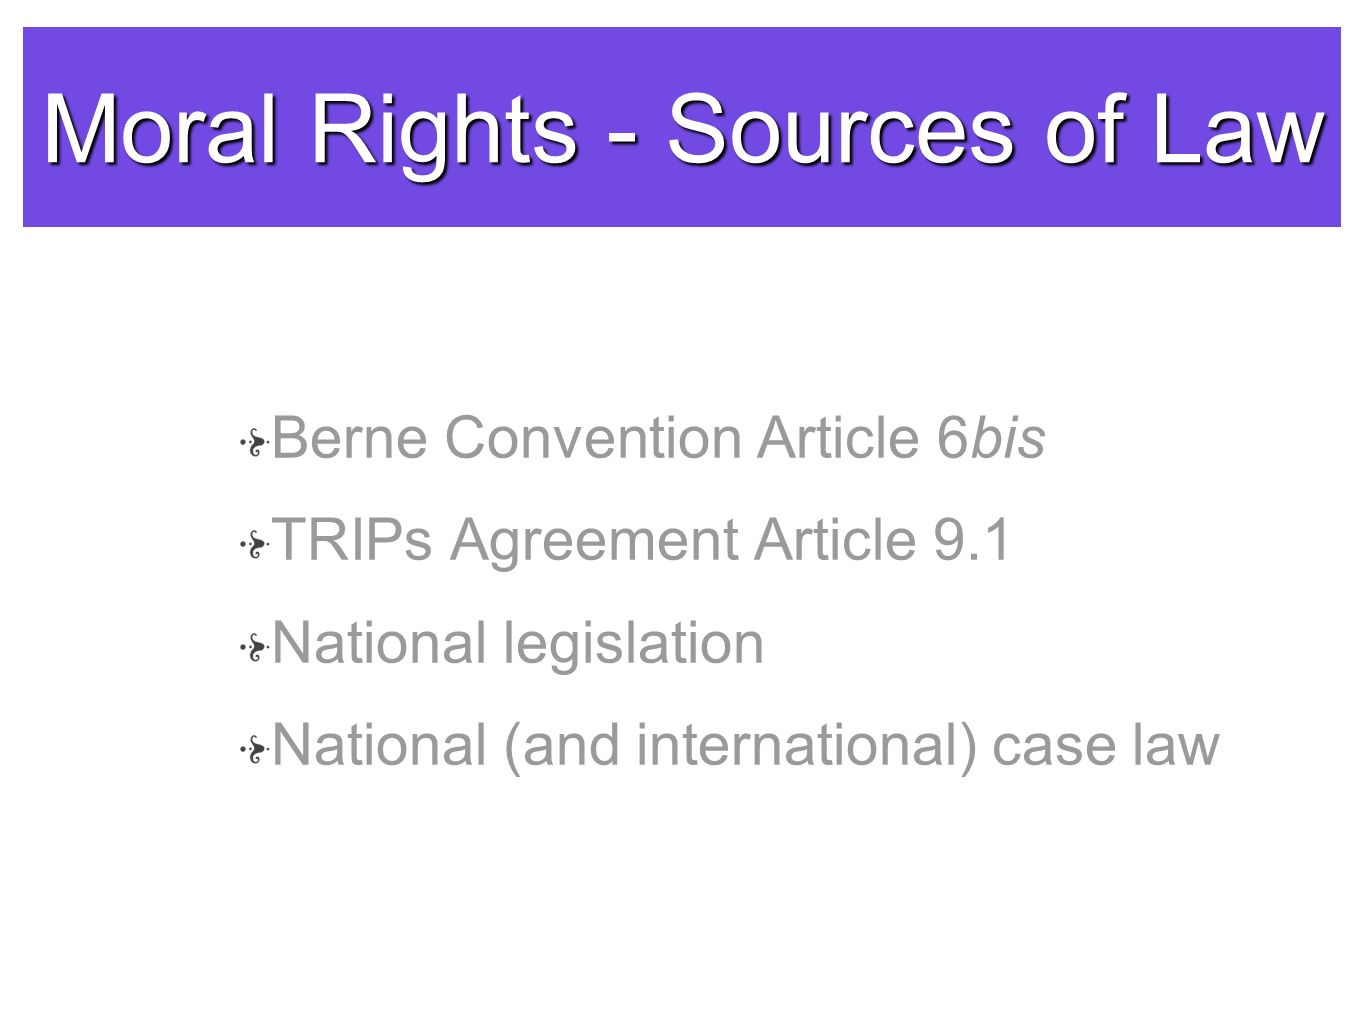 Moral Rights - Sources of Law Berne Convention Article 6bis TRIPs Agreement Article 9.1 National legislation National (and international) case law